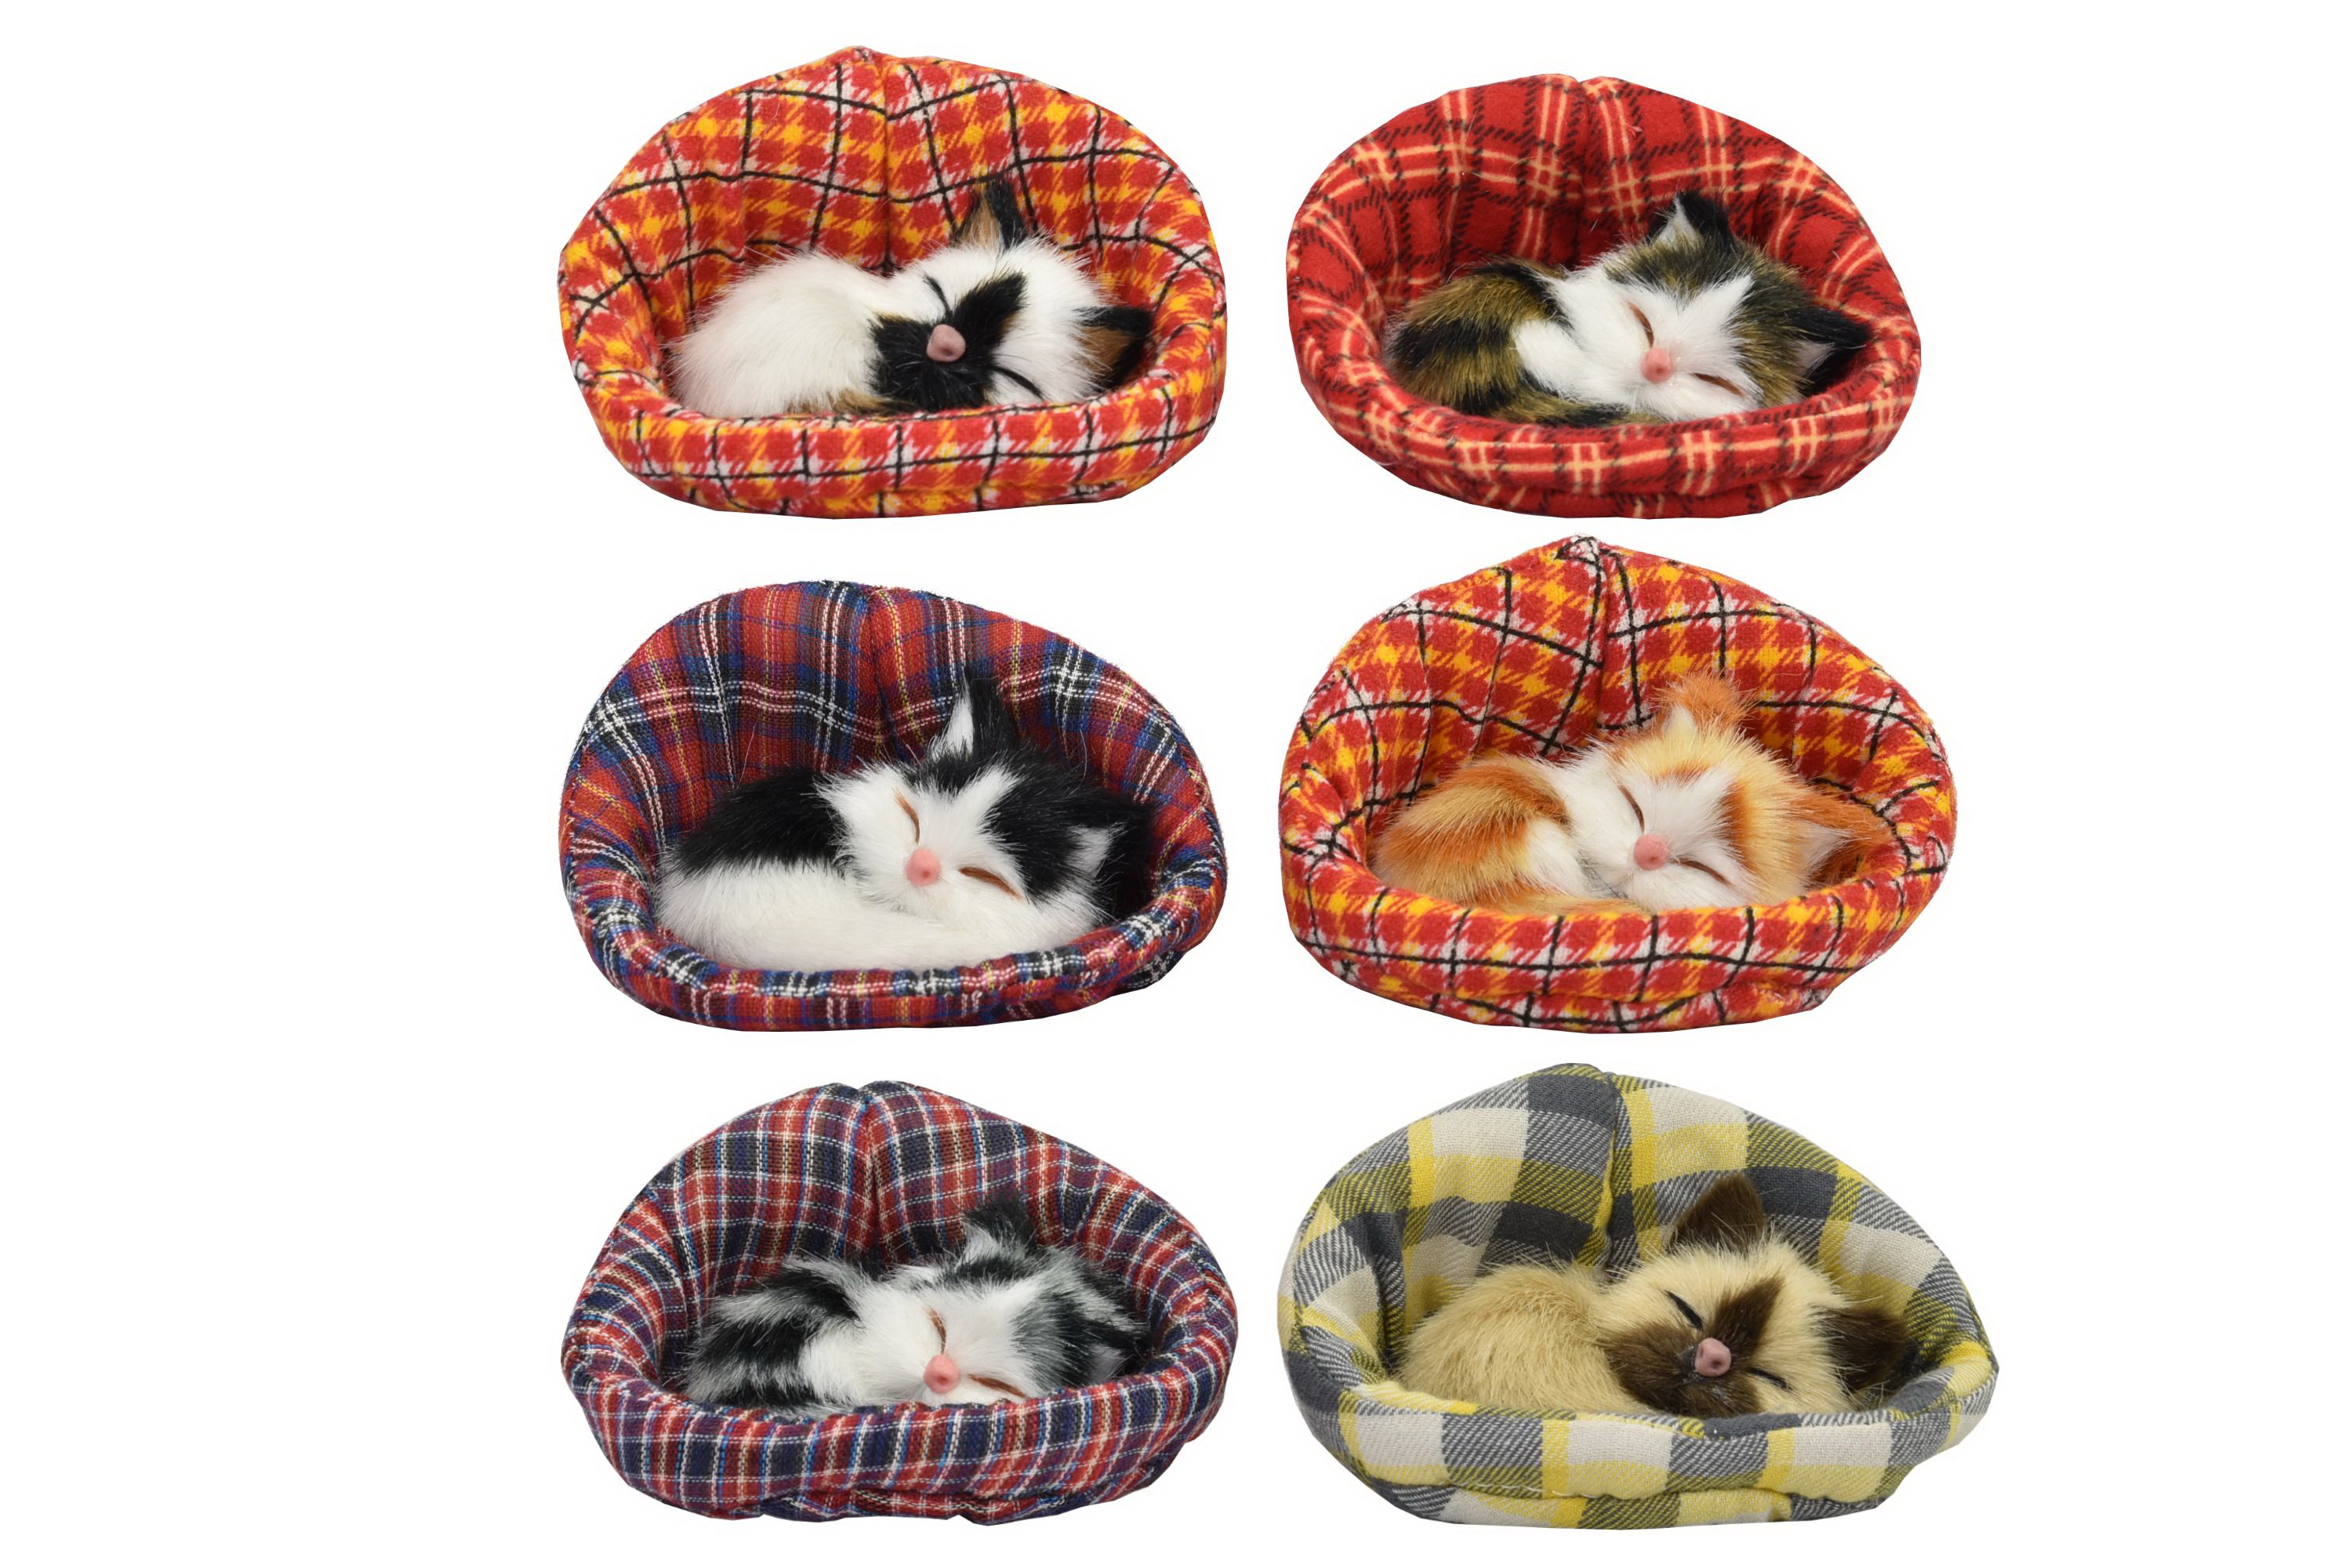 Small Kittens In Basket 6 Assorted